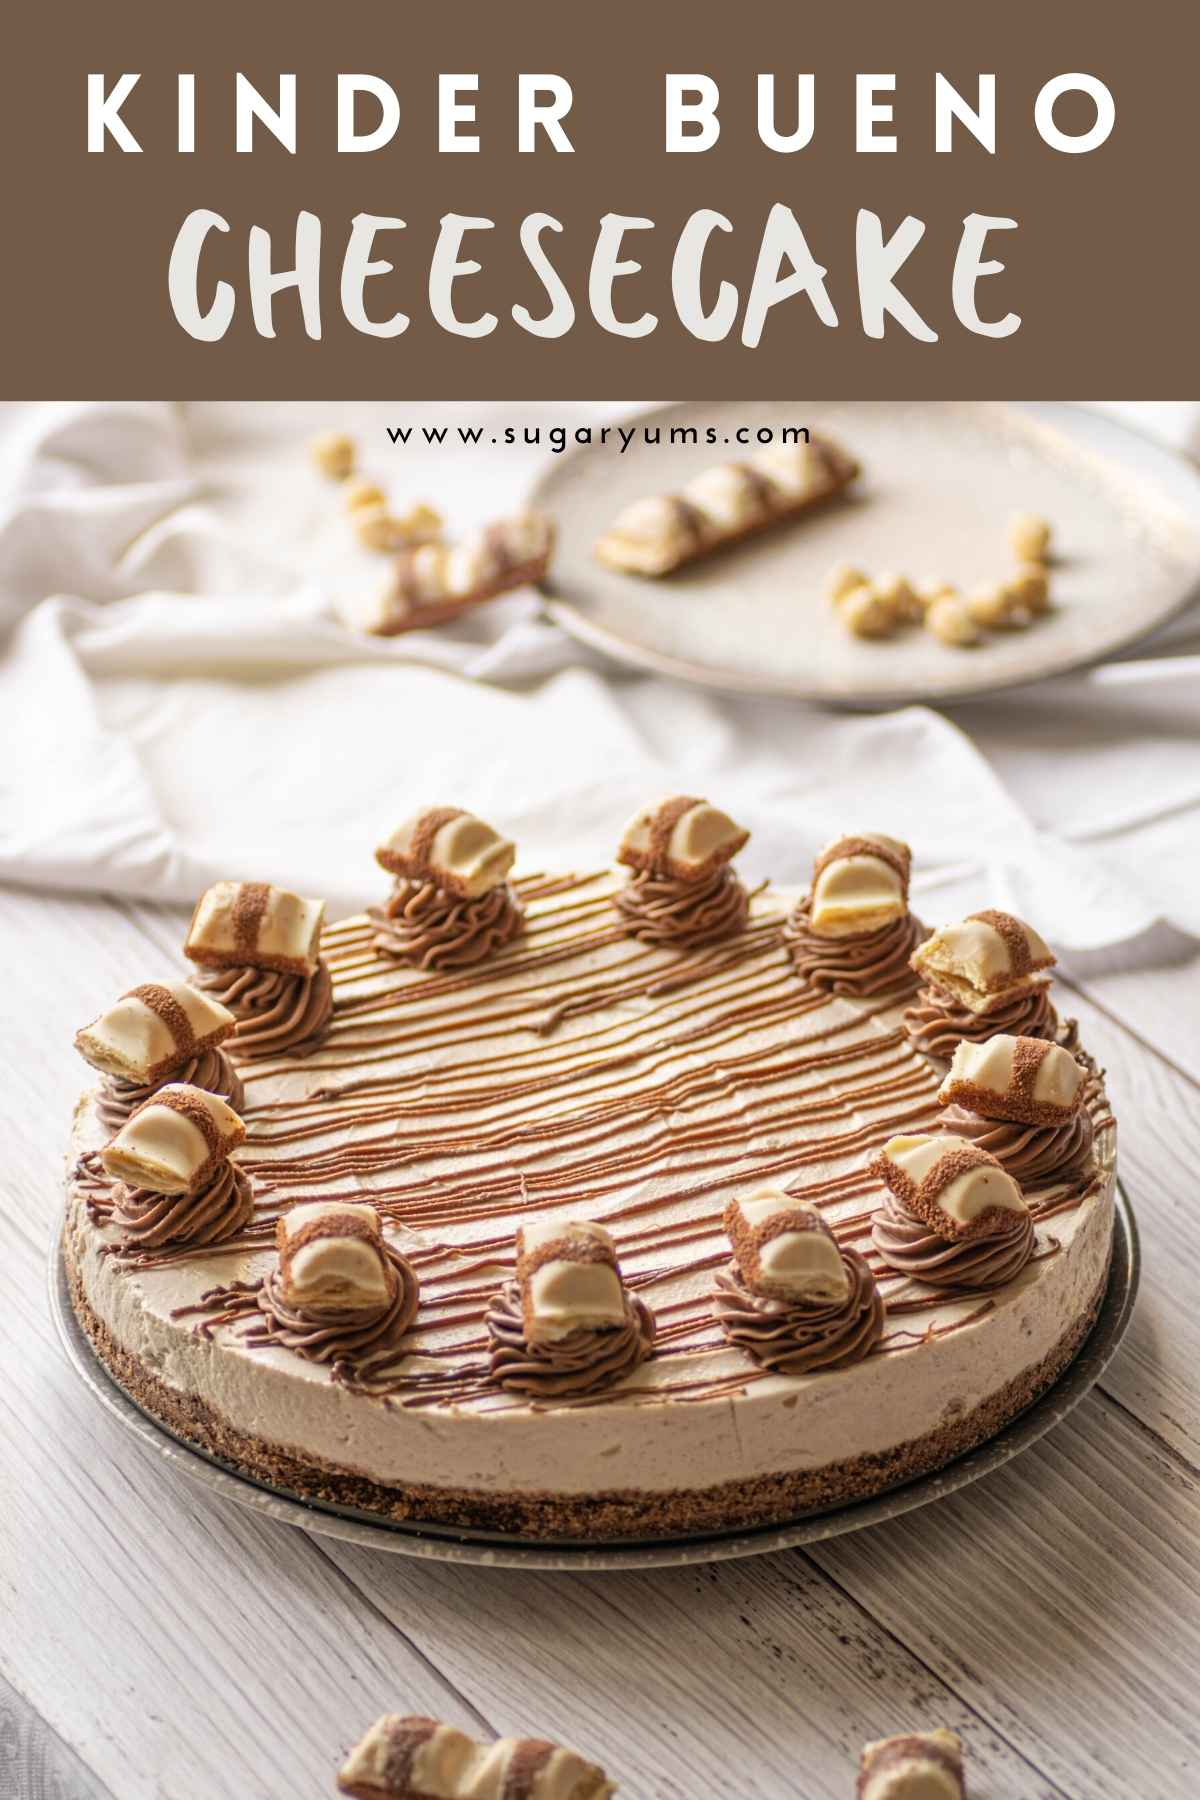 Kinder Bueno cheesecake with writing on top